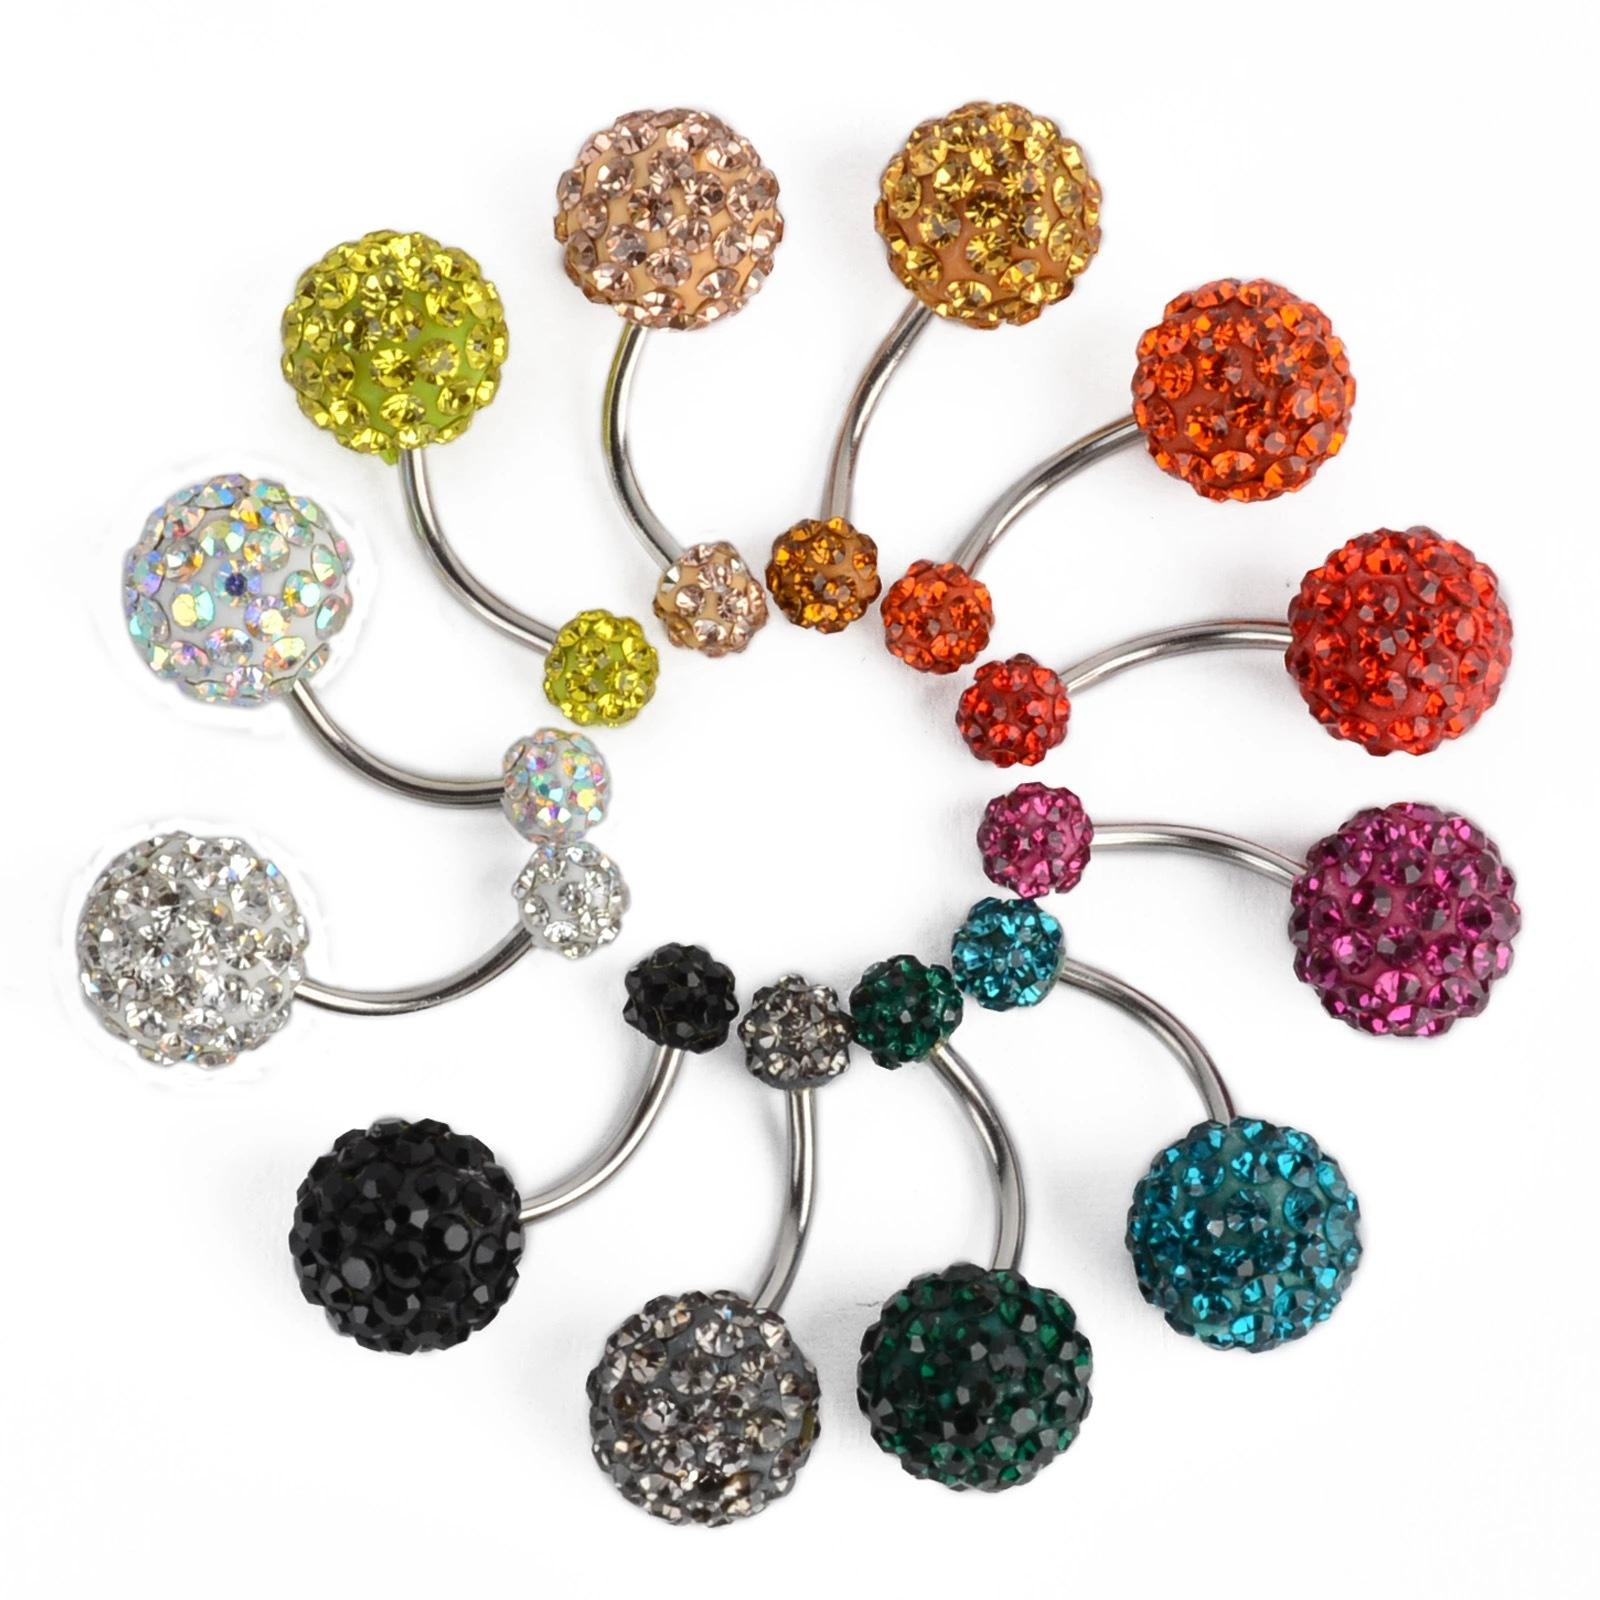 Hot Sale Sexy Piercing Jewelry Stainless Steel Belly Ring Cubic Zirconia Ball Navel Ring For Girls